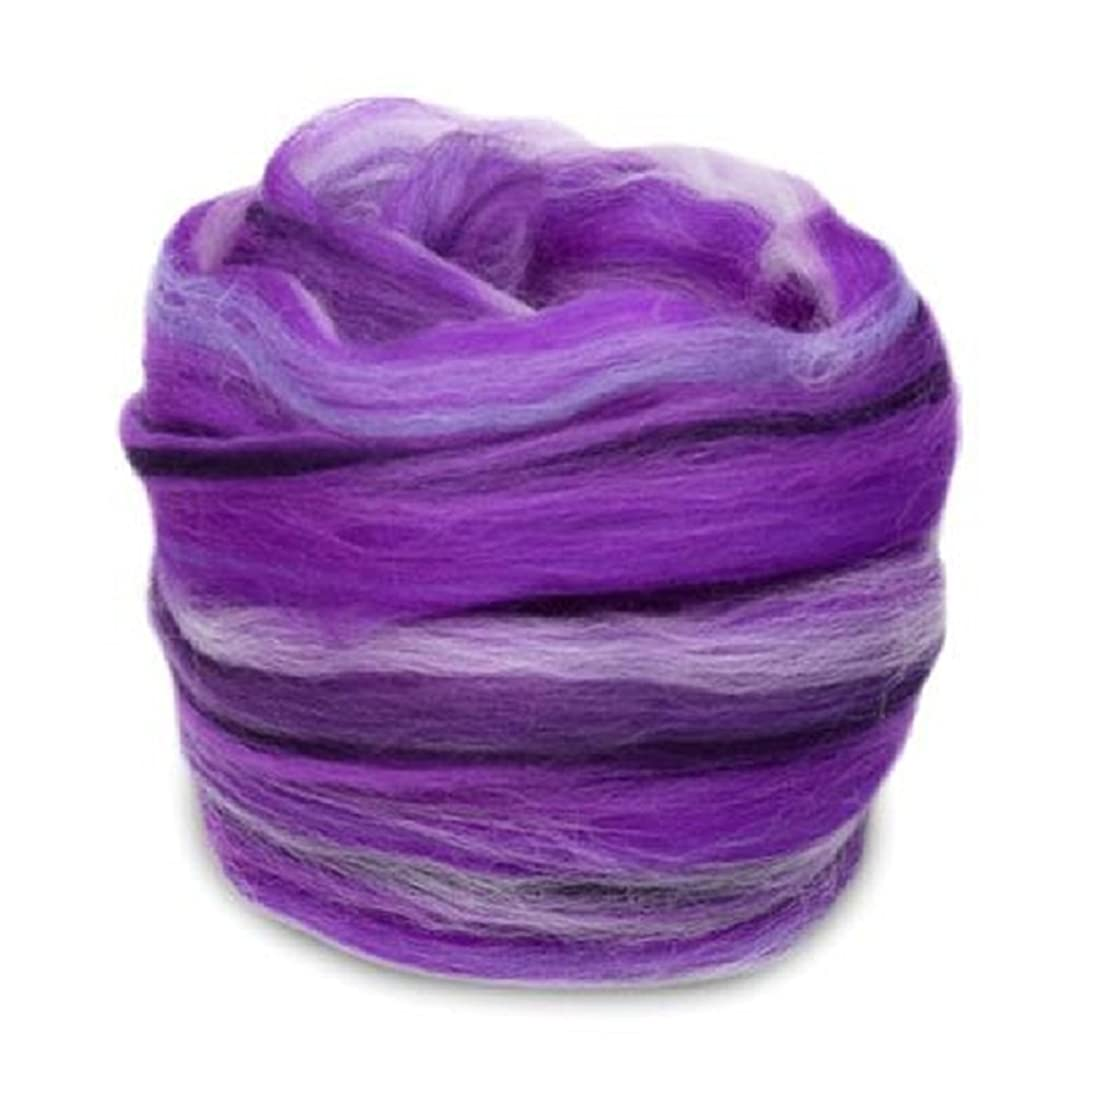 4 oz. Paradise Fibers Ultra Violet Multi Colored Merino Wool Top - Highest Quality Spinning Fiber Luxuriously Soft Wool Top Roving drafted for Spinning, Felting, Blending and Weaving